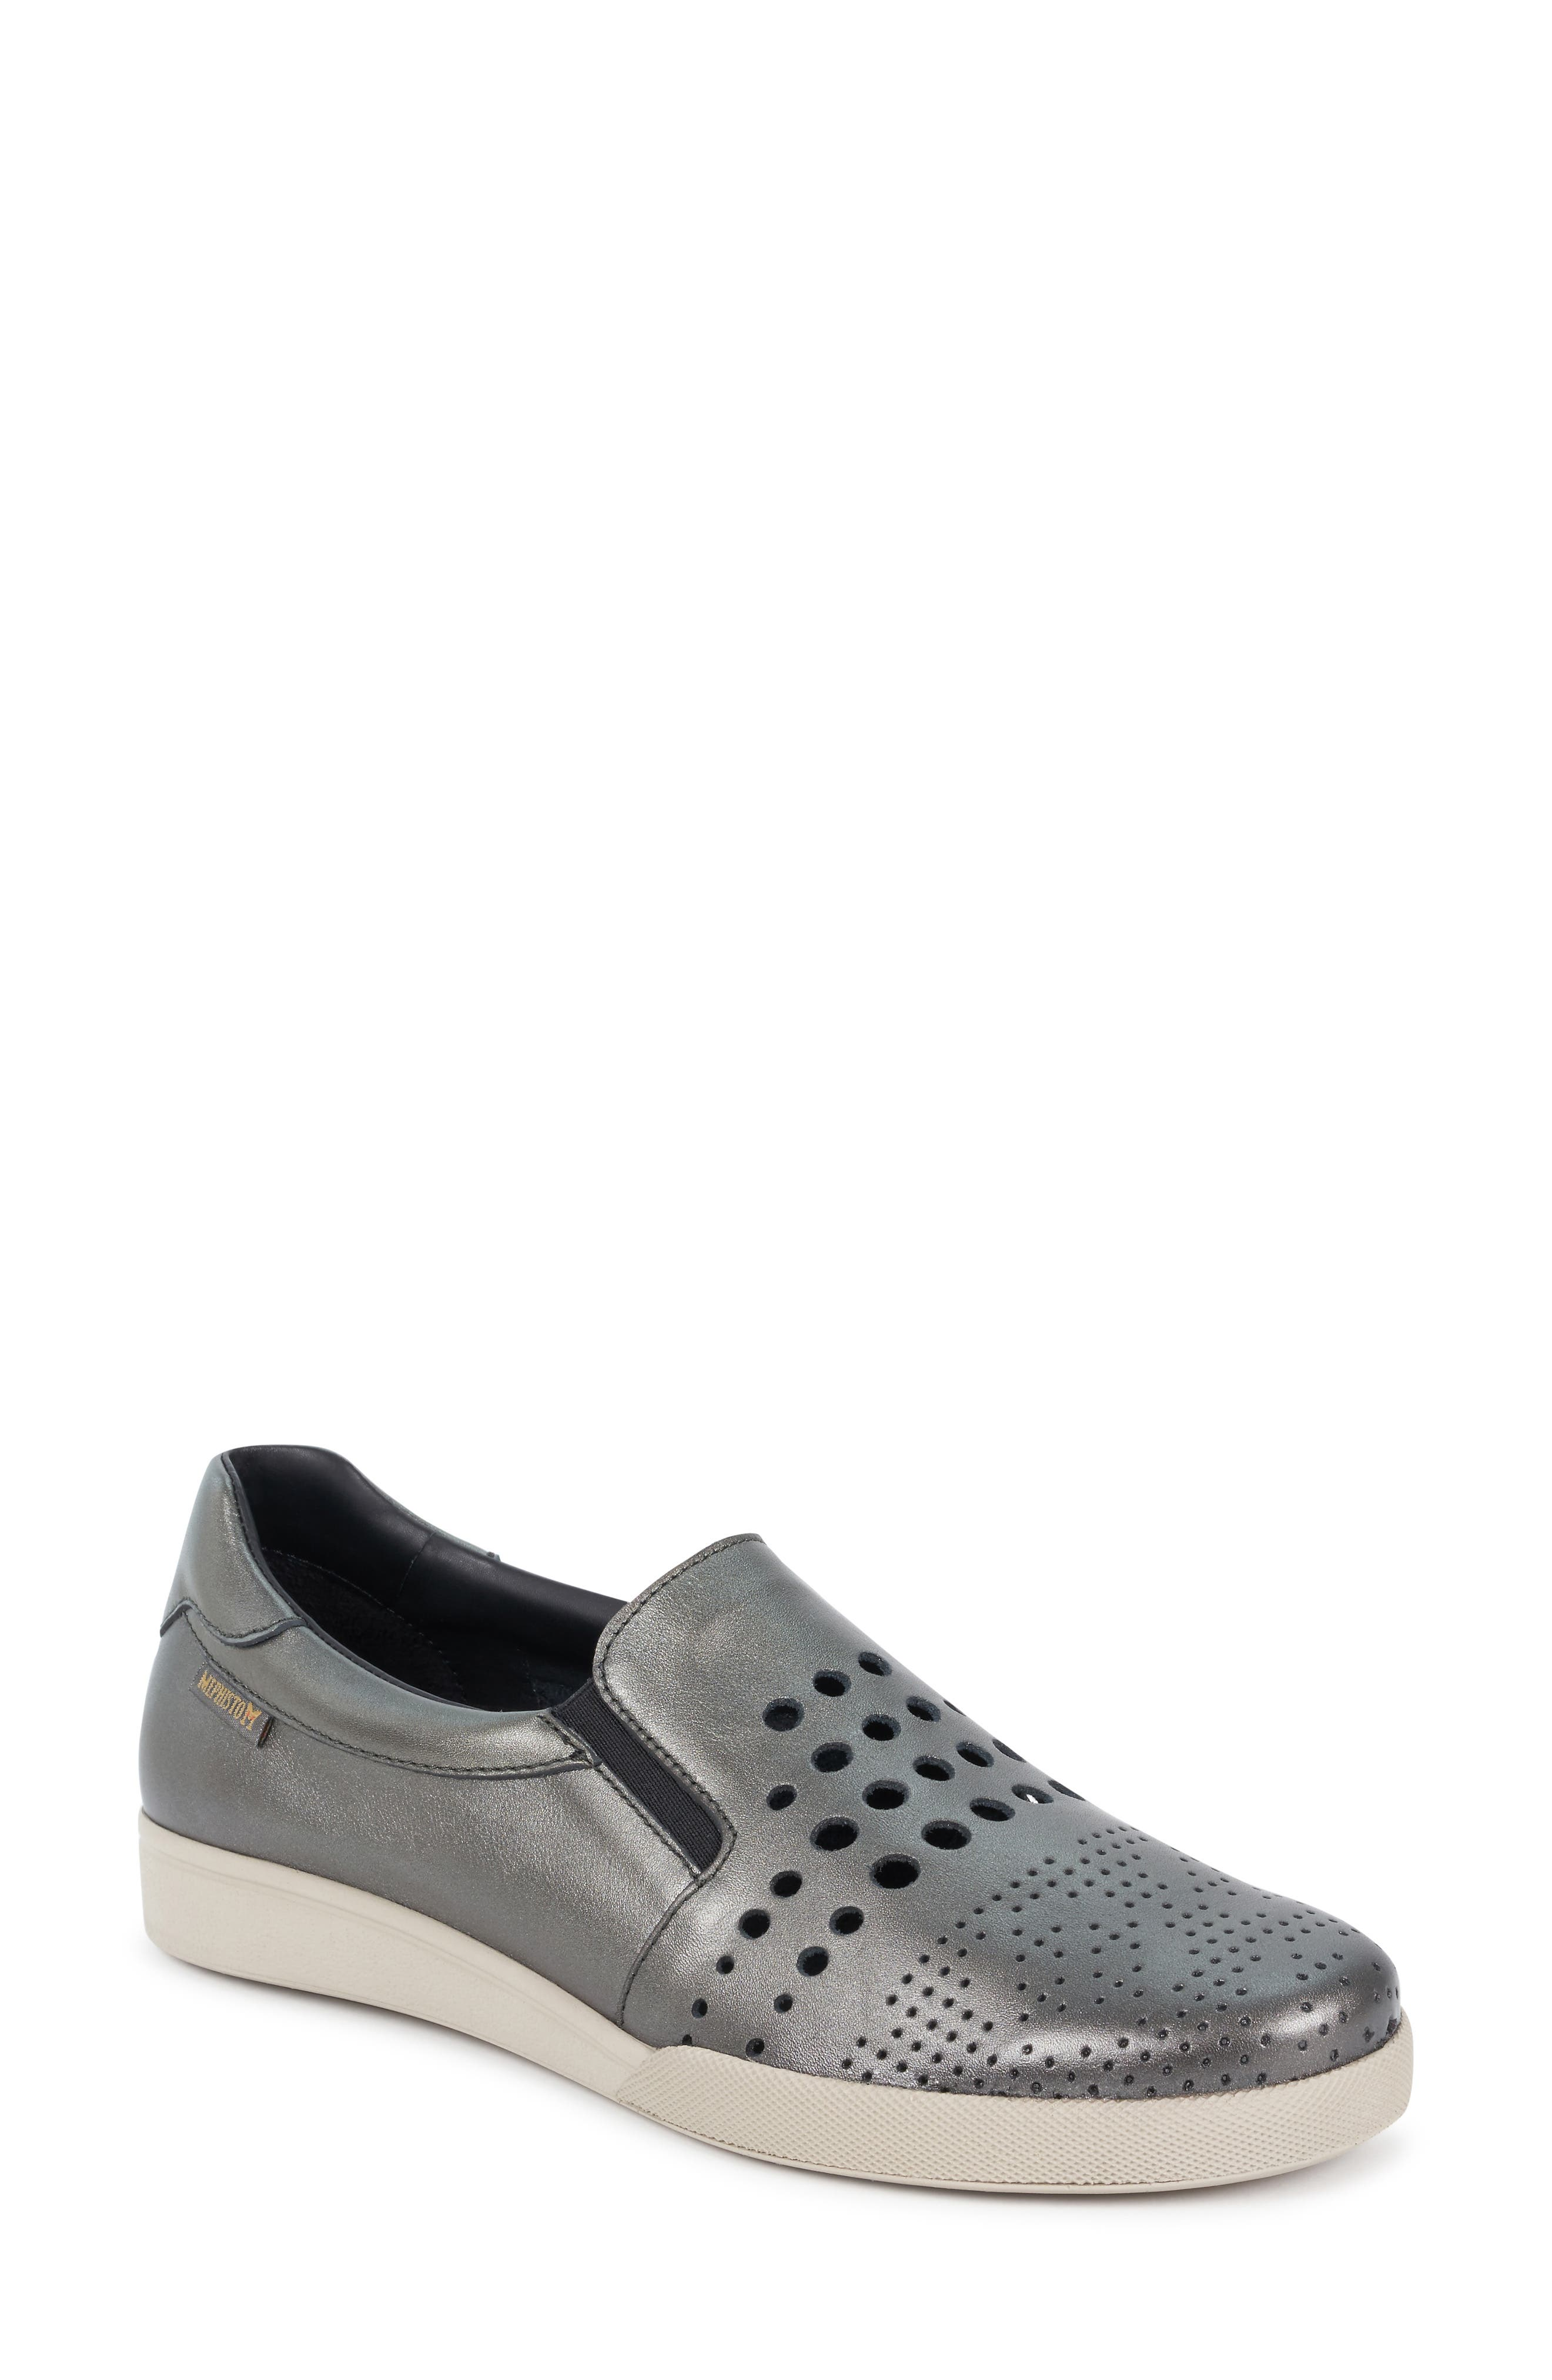 MEPHISTO, Doroty Perforated Slip-On Sneaker 9, Main thumbnail 1, color, DARK GREY